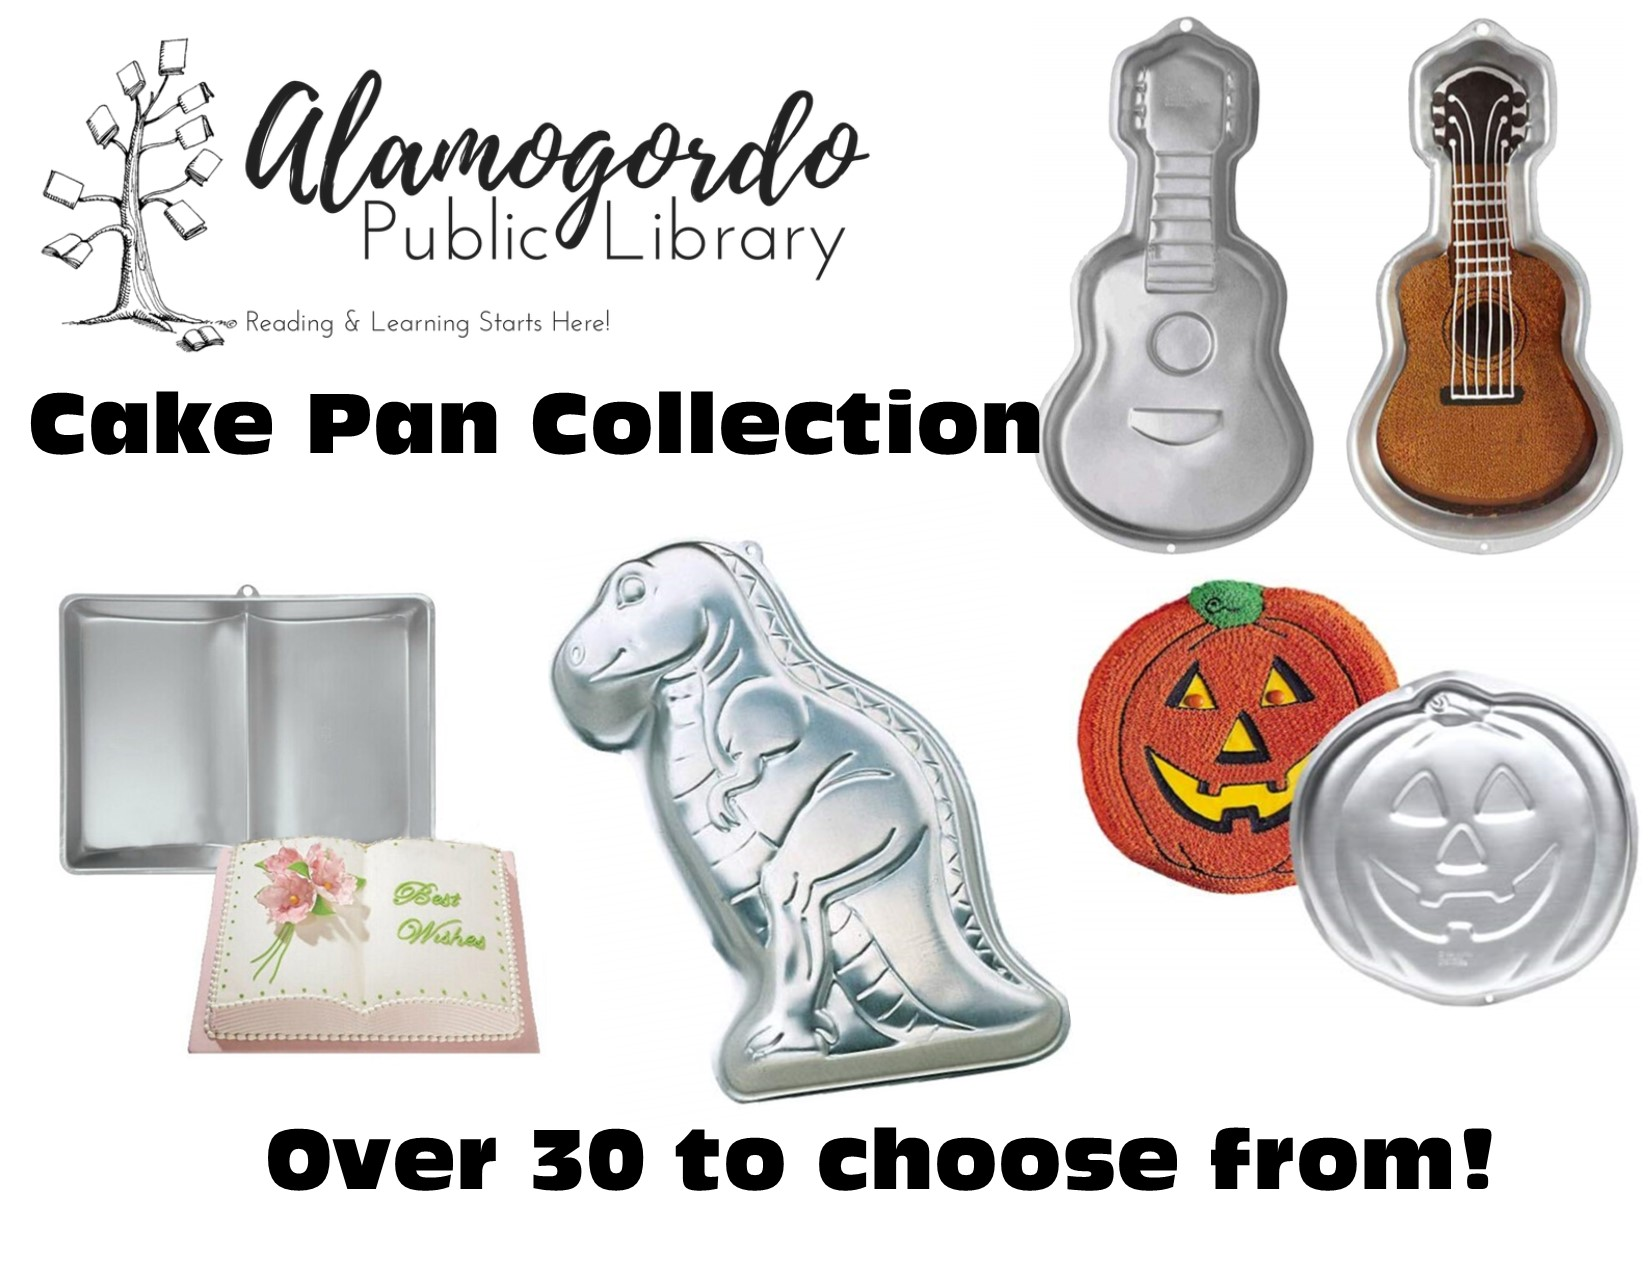 Cake Pan collection at the public library